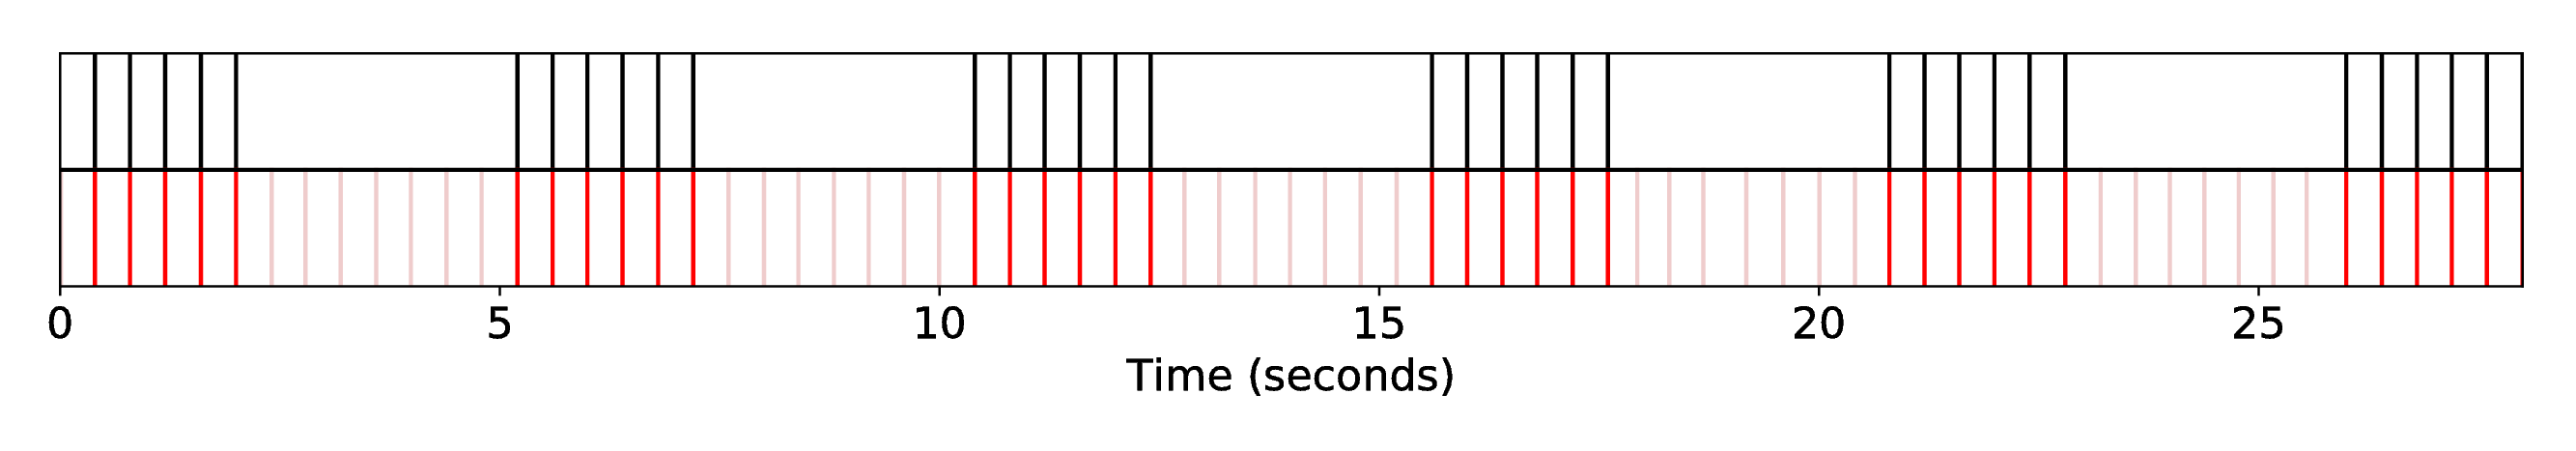 DP1_INT1_R-Syn-CoGa__S-Silence__SequenceAlignment